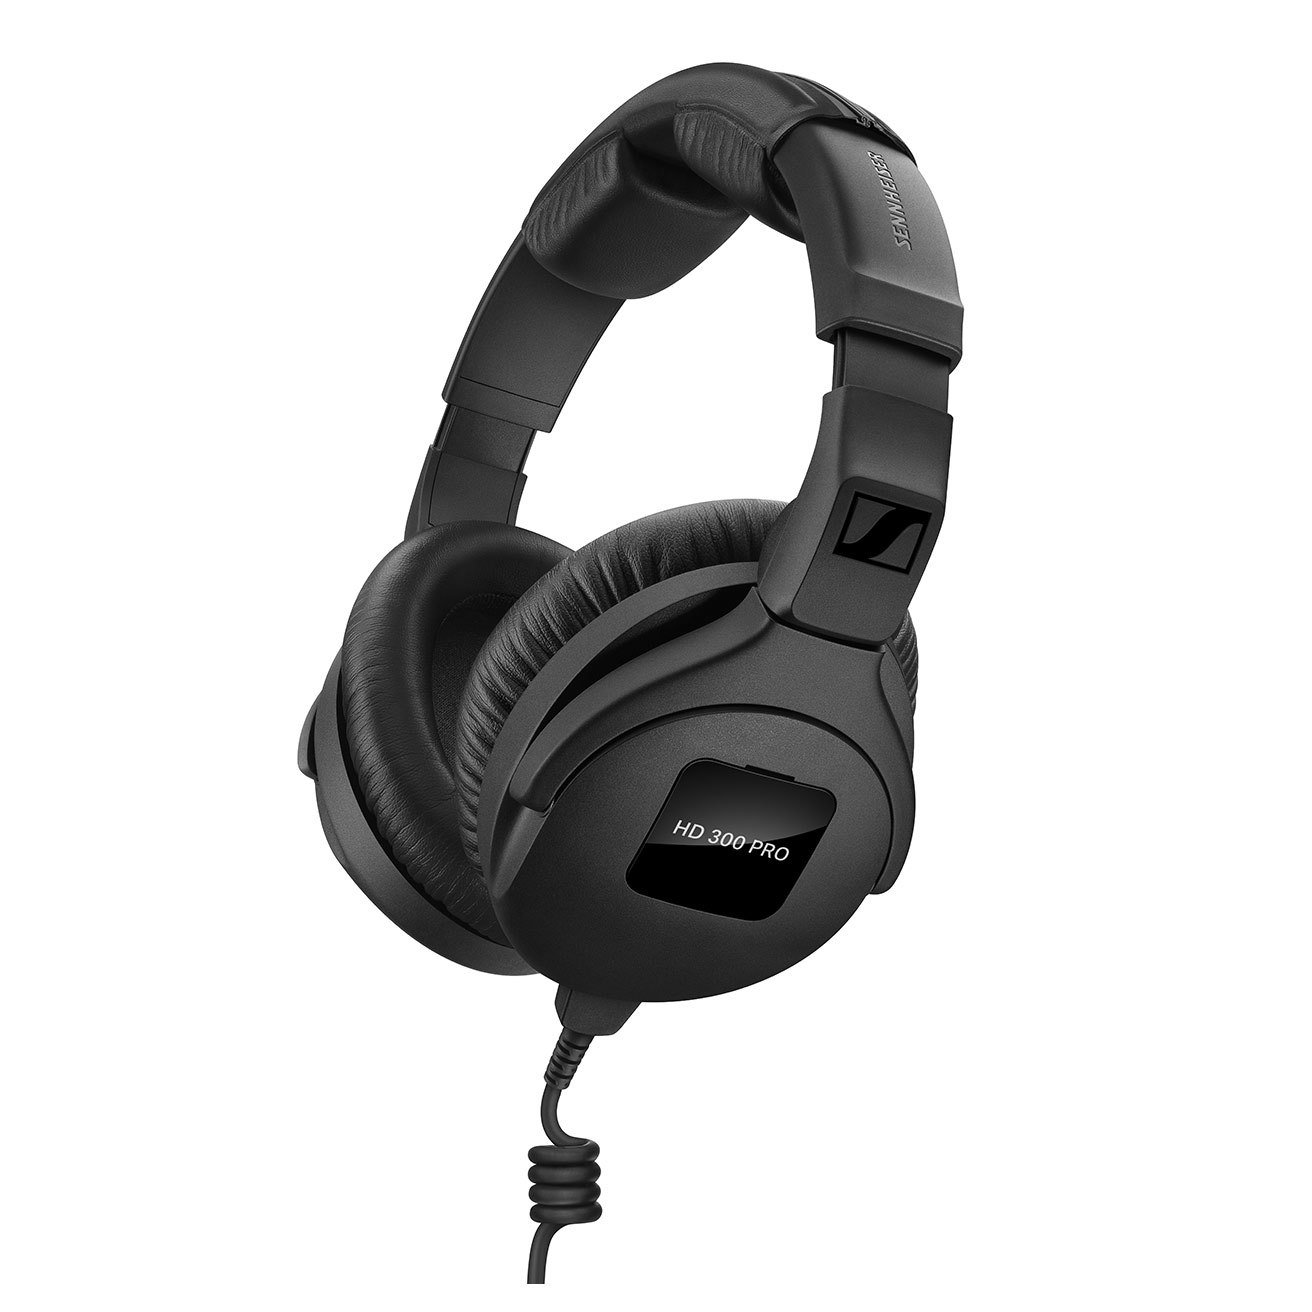 Headphones HD300 Pro monitor fechados